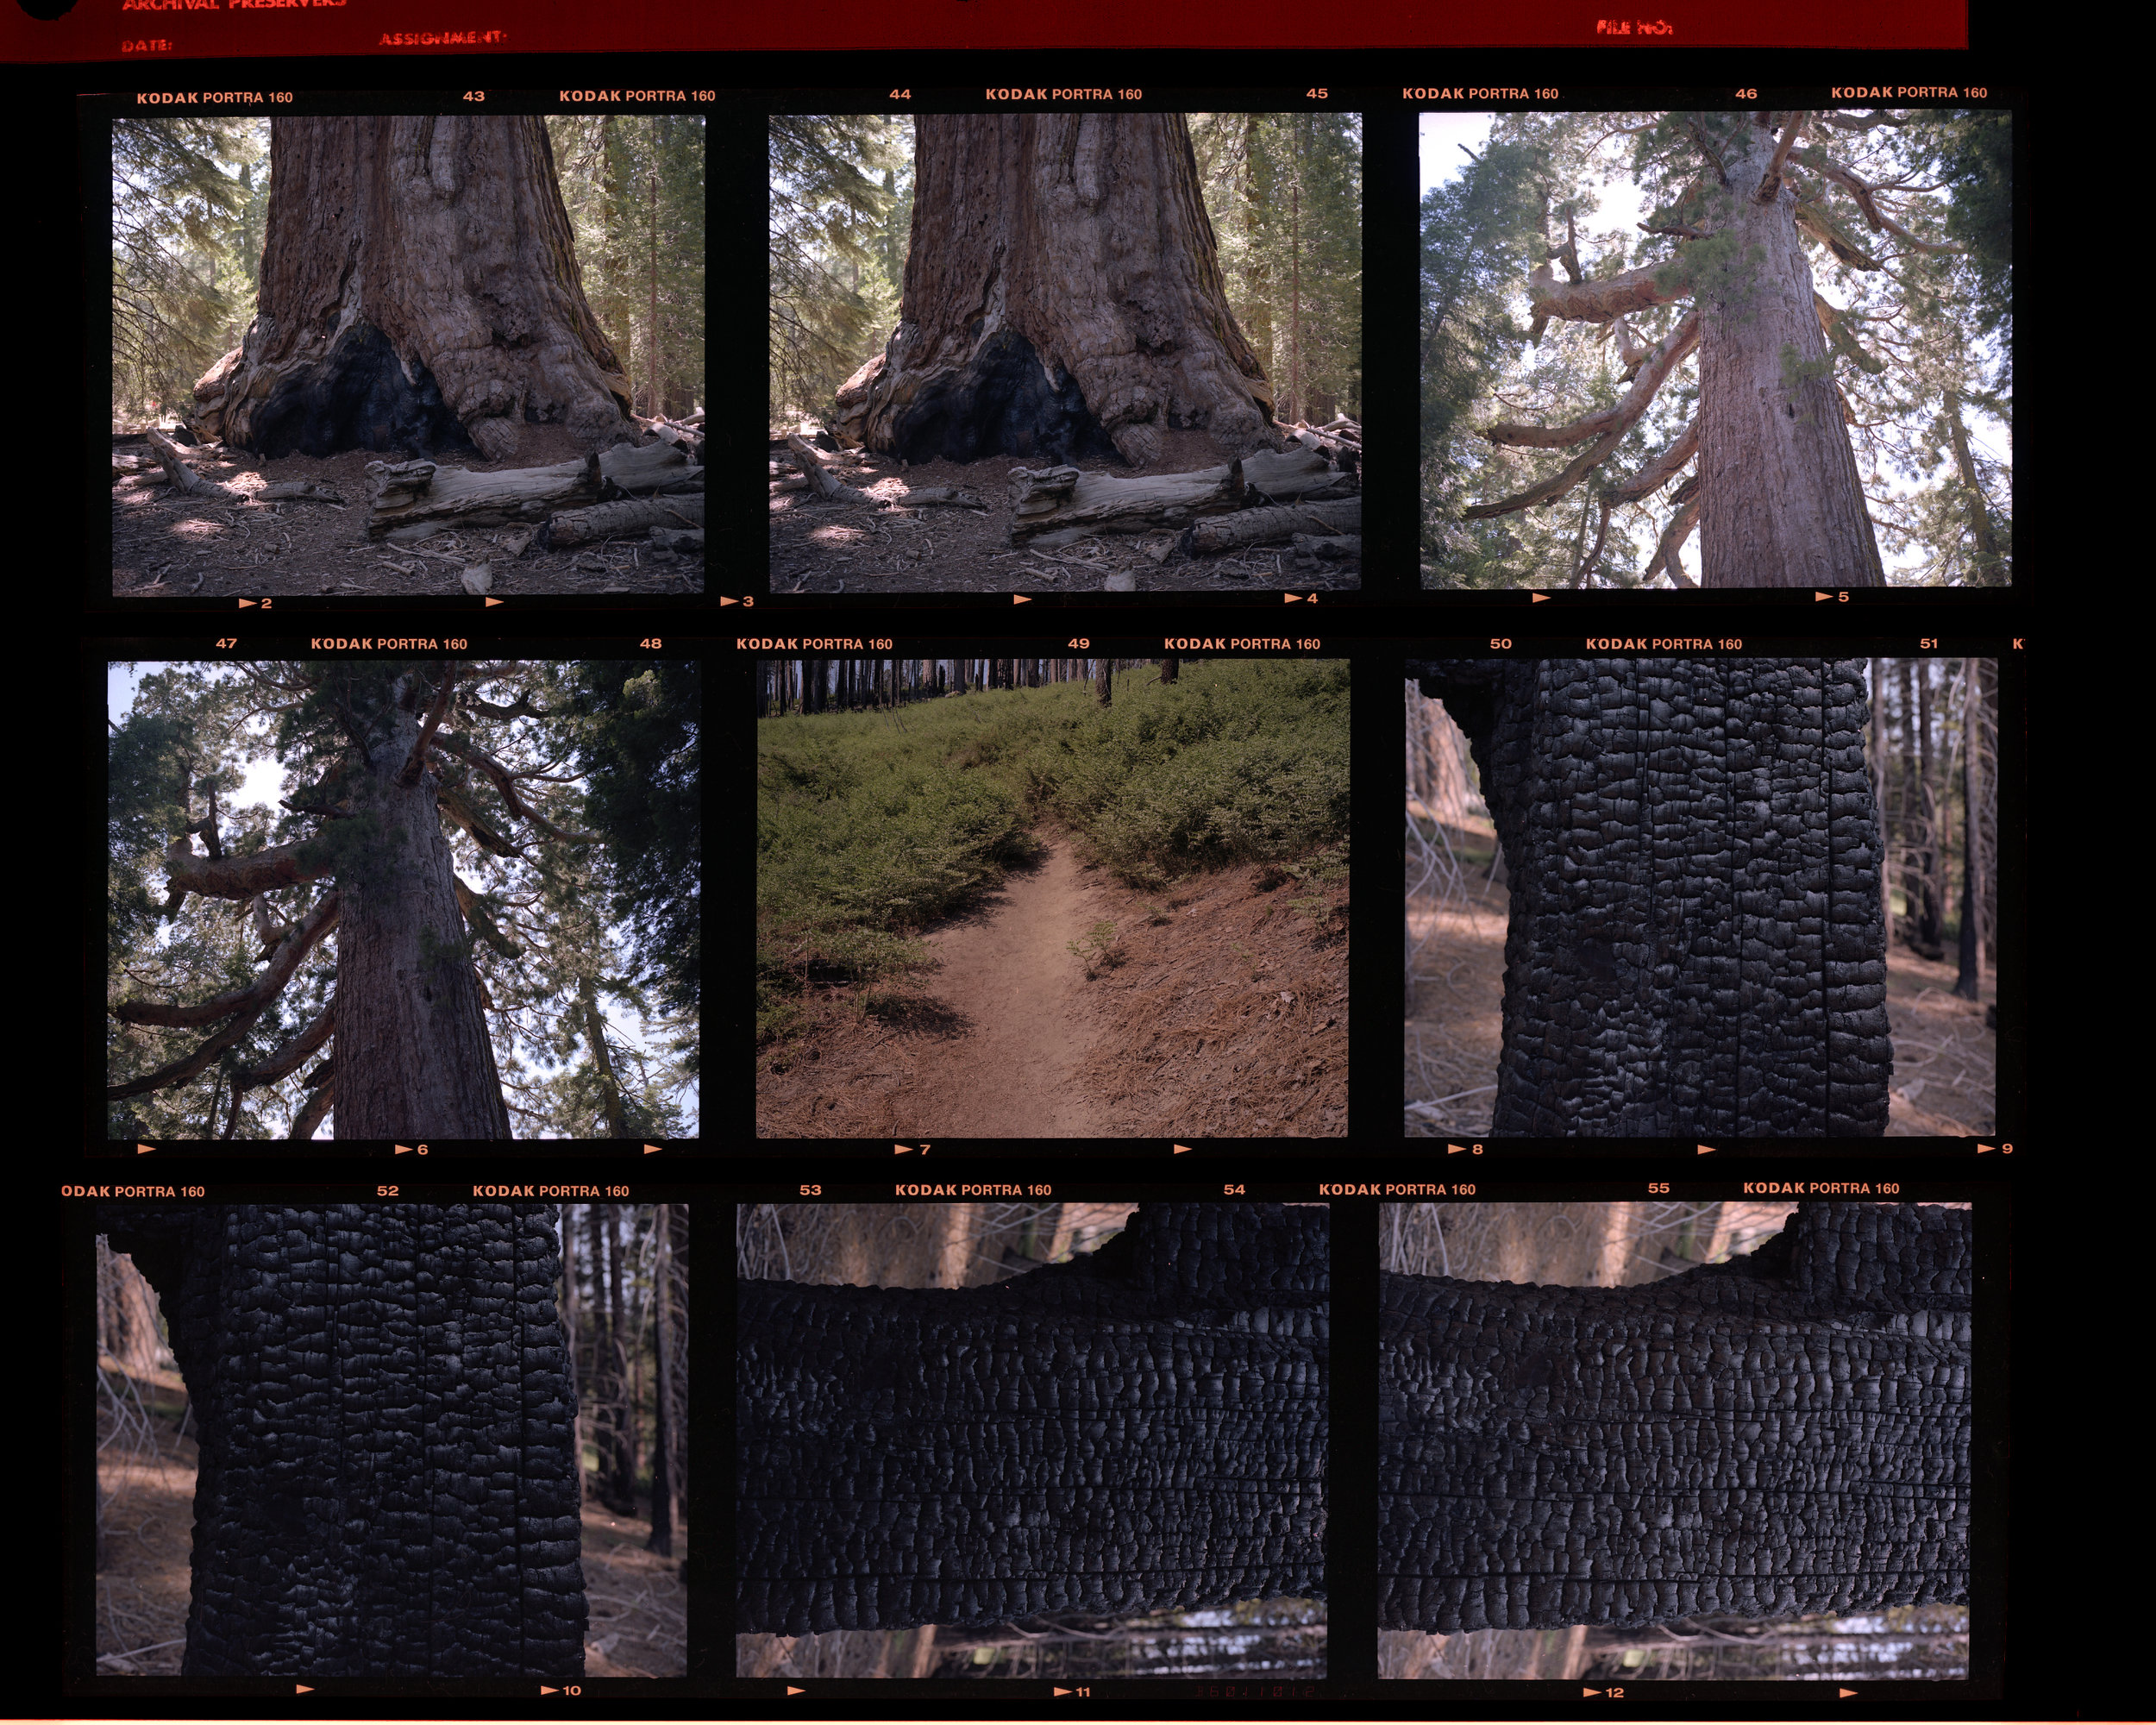 Original two frames of Grizzly Giant, looking up at GG, trail path, and a charred tree.